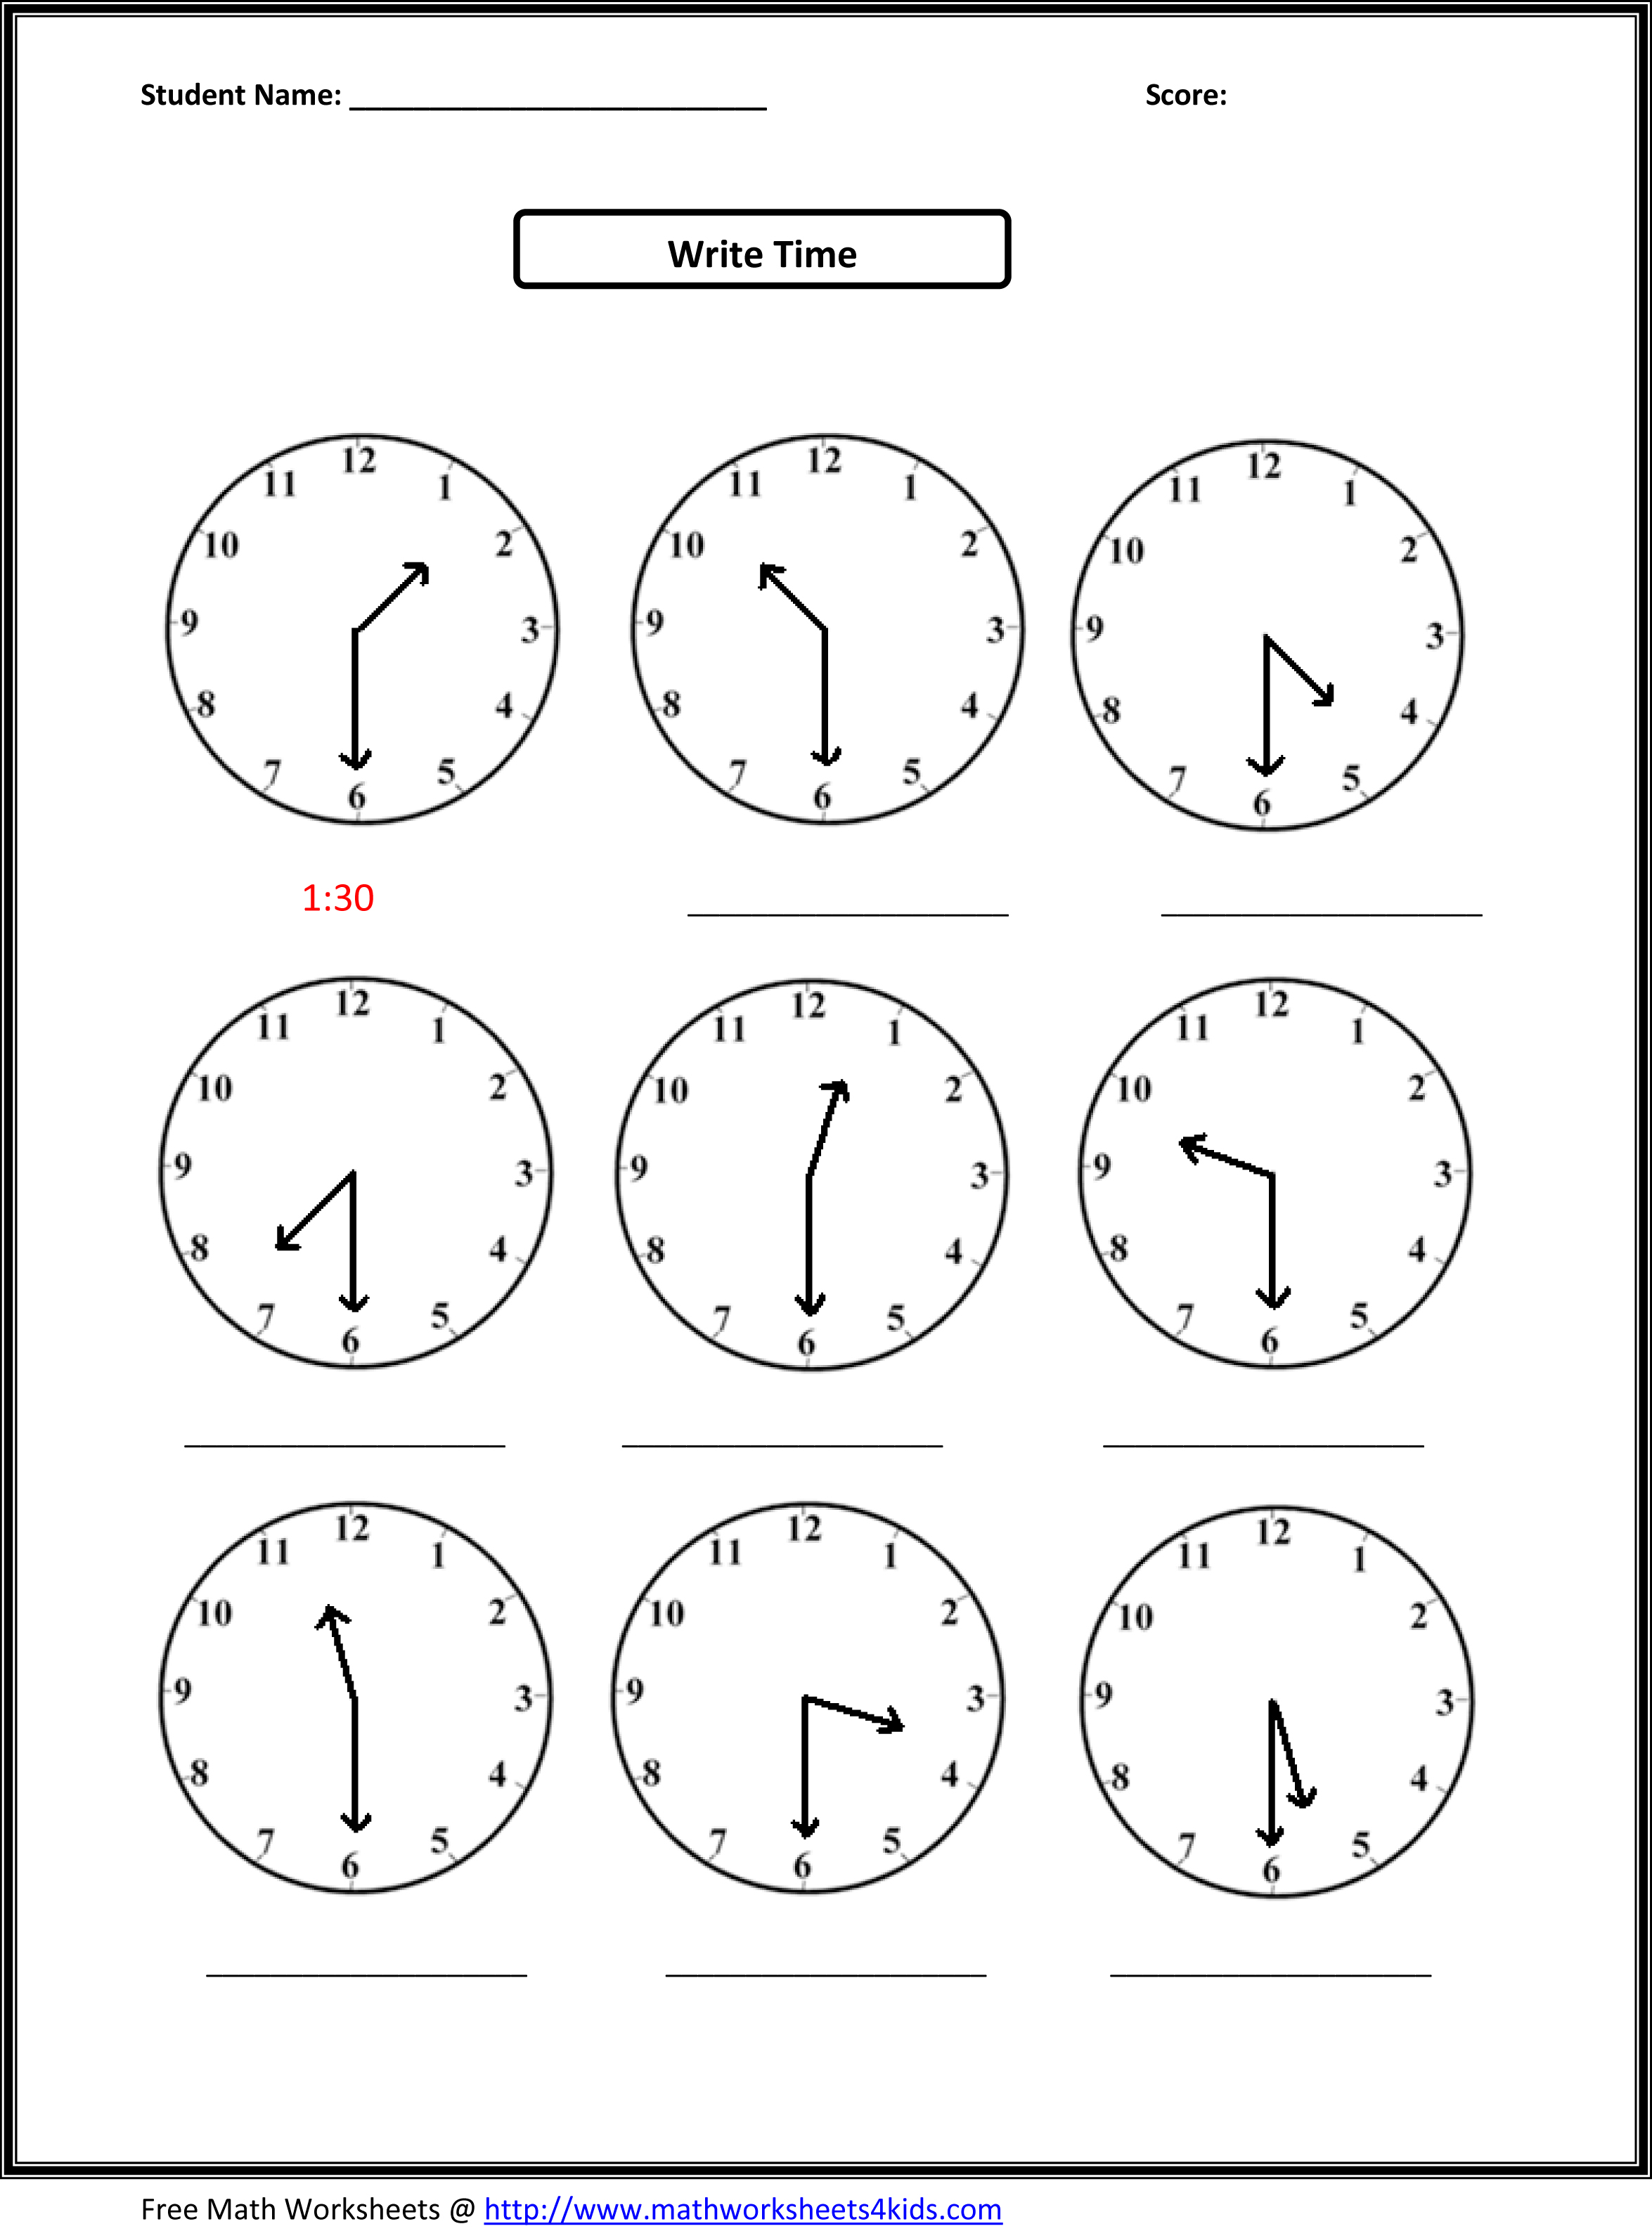 12 Best Images Of Saxon Math 5th Grade Printable Worksheets